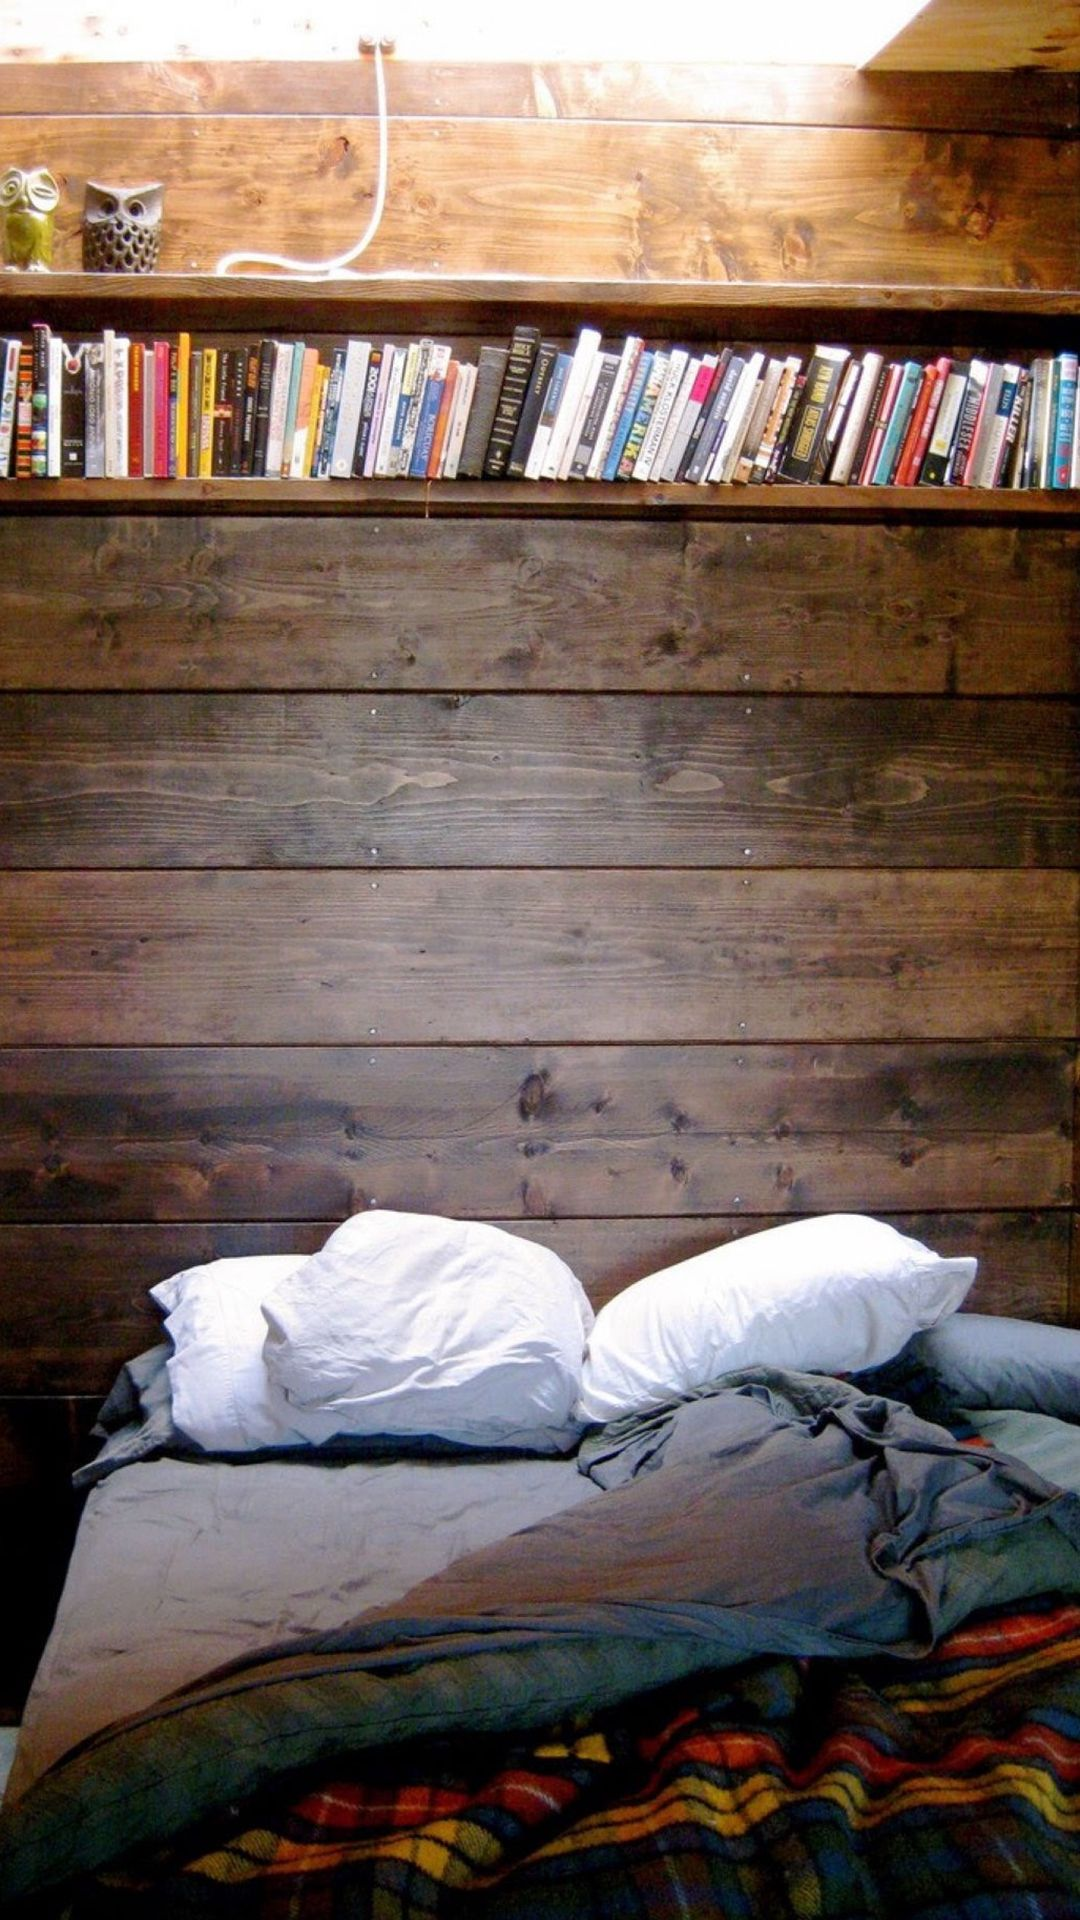 1080x1920 Bed Reading Spot Book Shelf iPhone 8 Wallpaper Download | iPhone ...